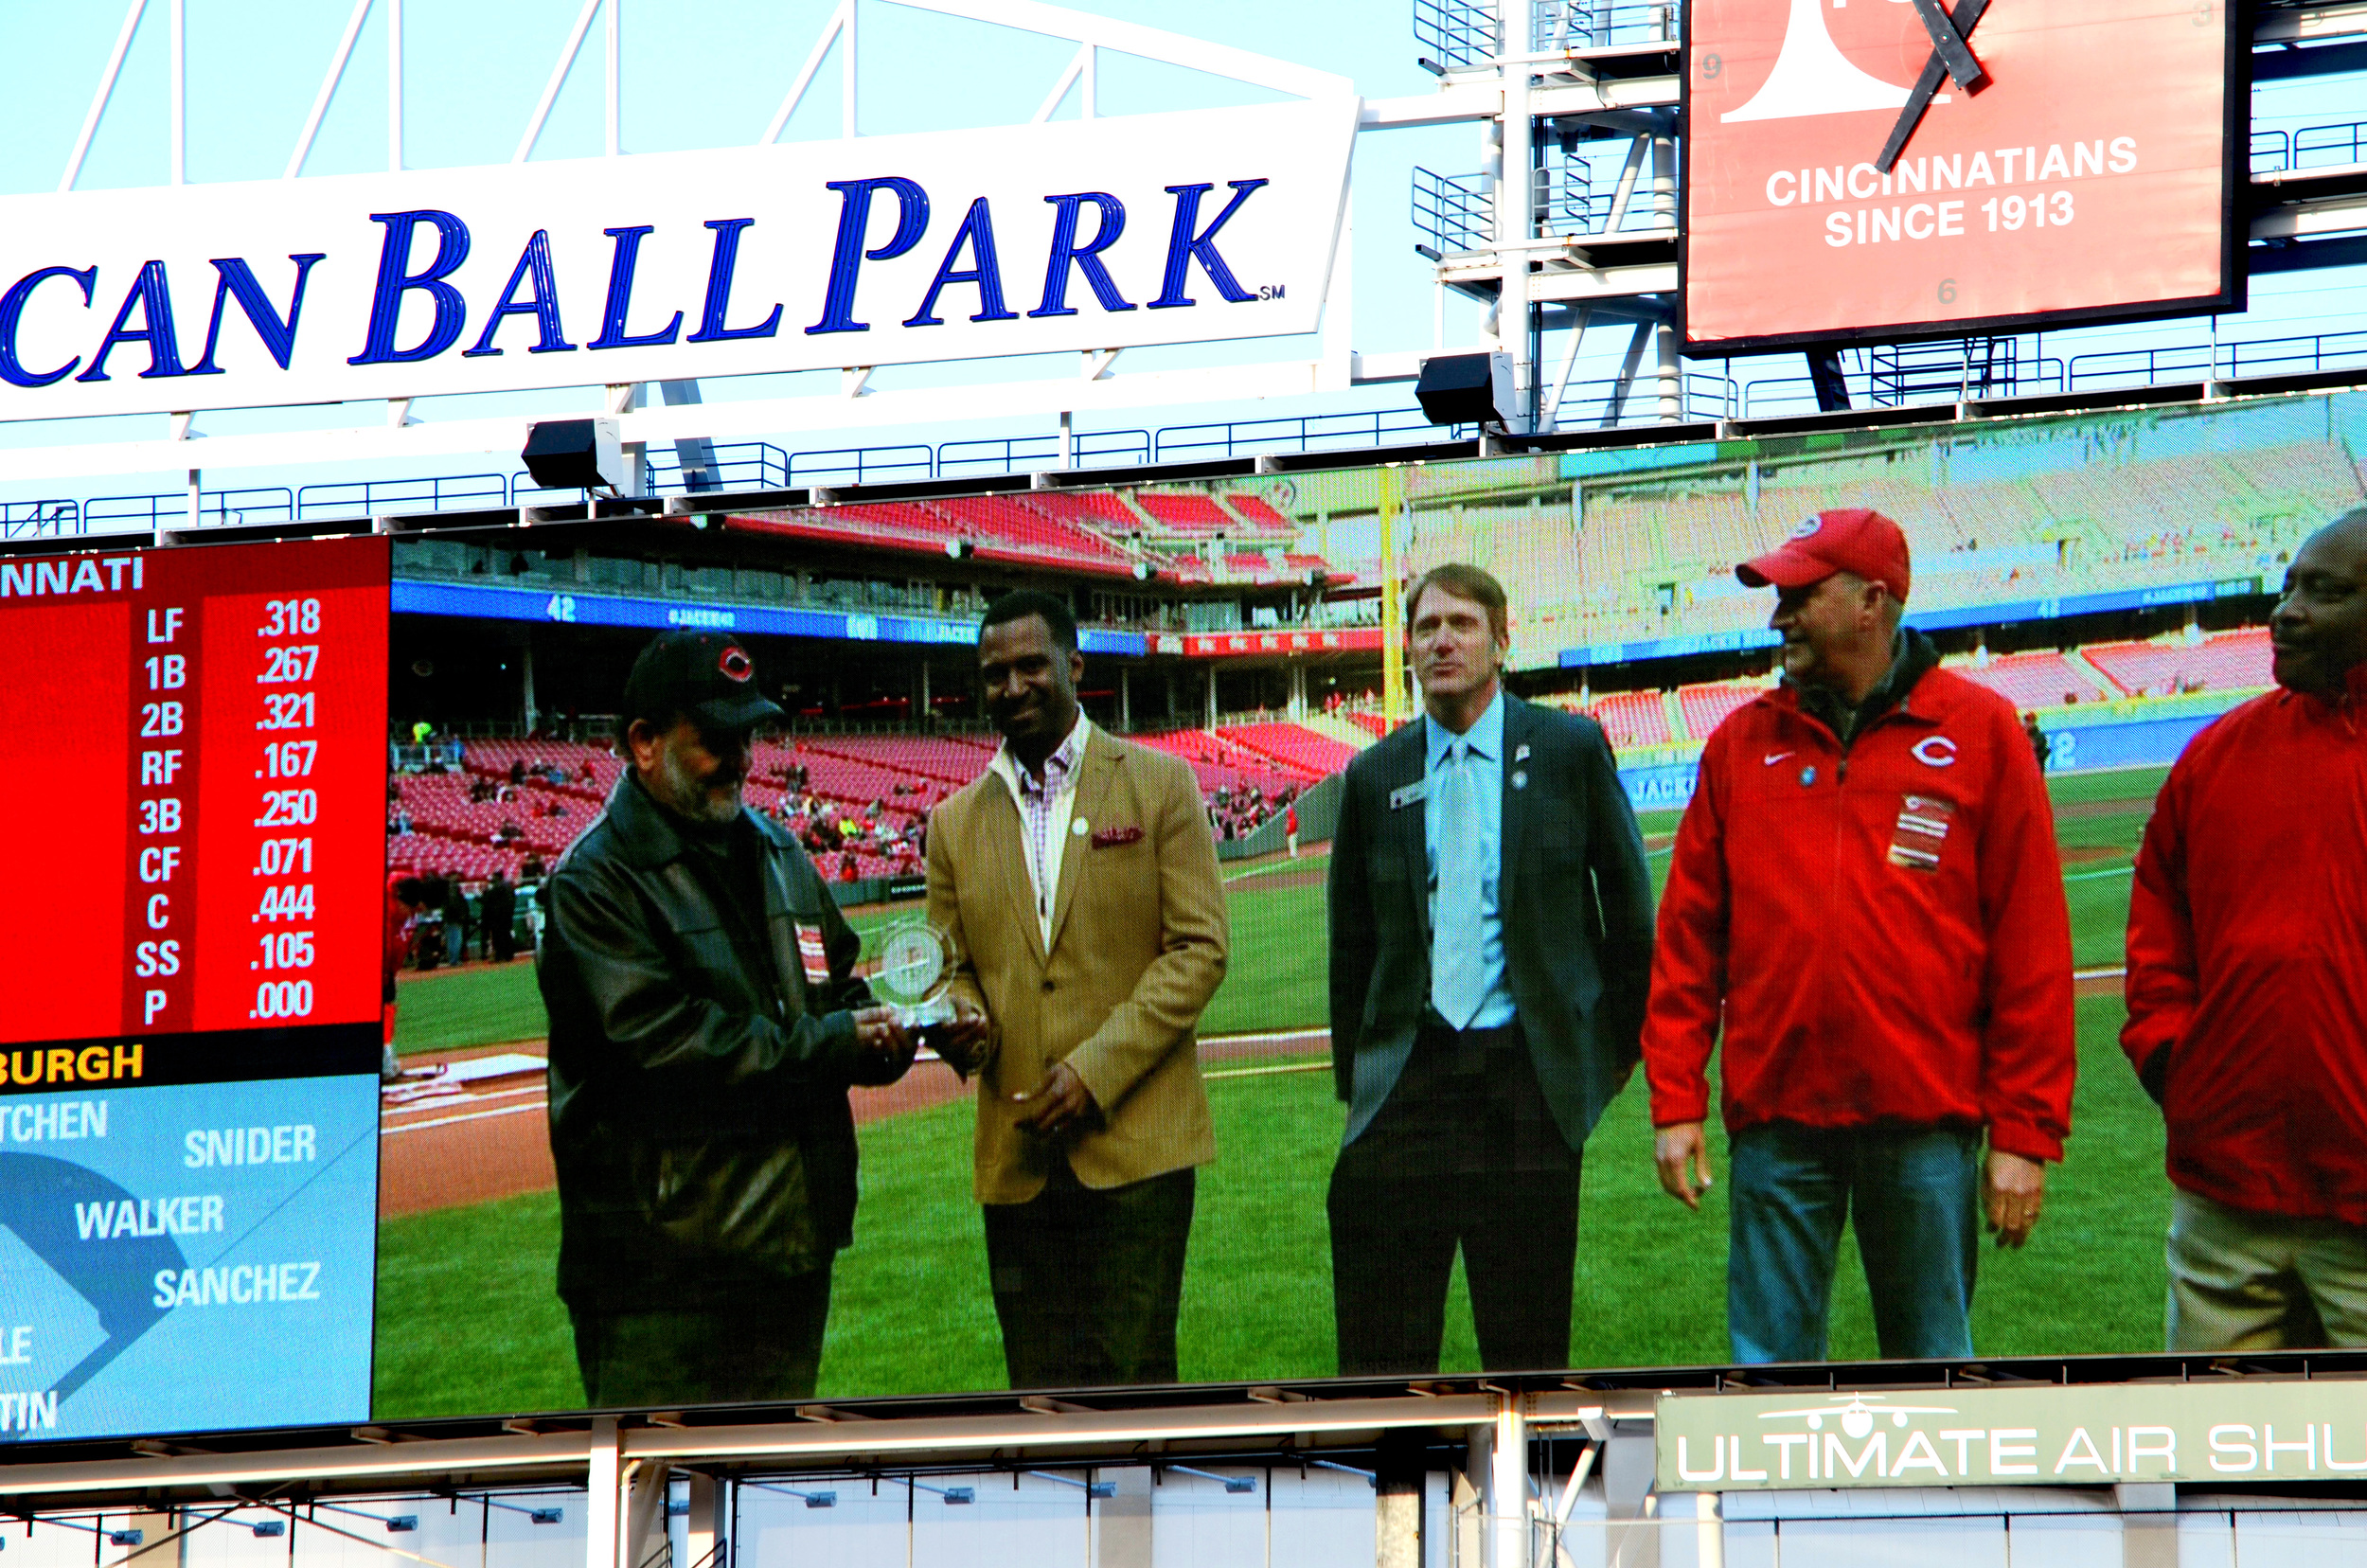 Clay Holland (Holland & Holland Inc., Sean Rutledge (African American Chamber of Commerce-Cincinnati), Charlie Frank (Cincinnati Reds), Chris Bain (Kokosing Construction Co,) and Joe Morgan (MLB Hall of Famer and former Cincinnati Reds player) at Cincinnati Reds Great American Ballpark. April 15, 2014